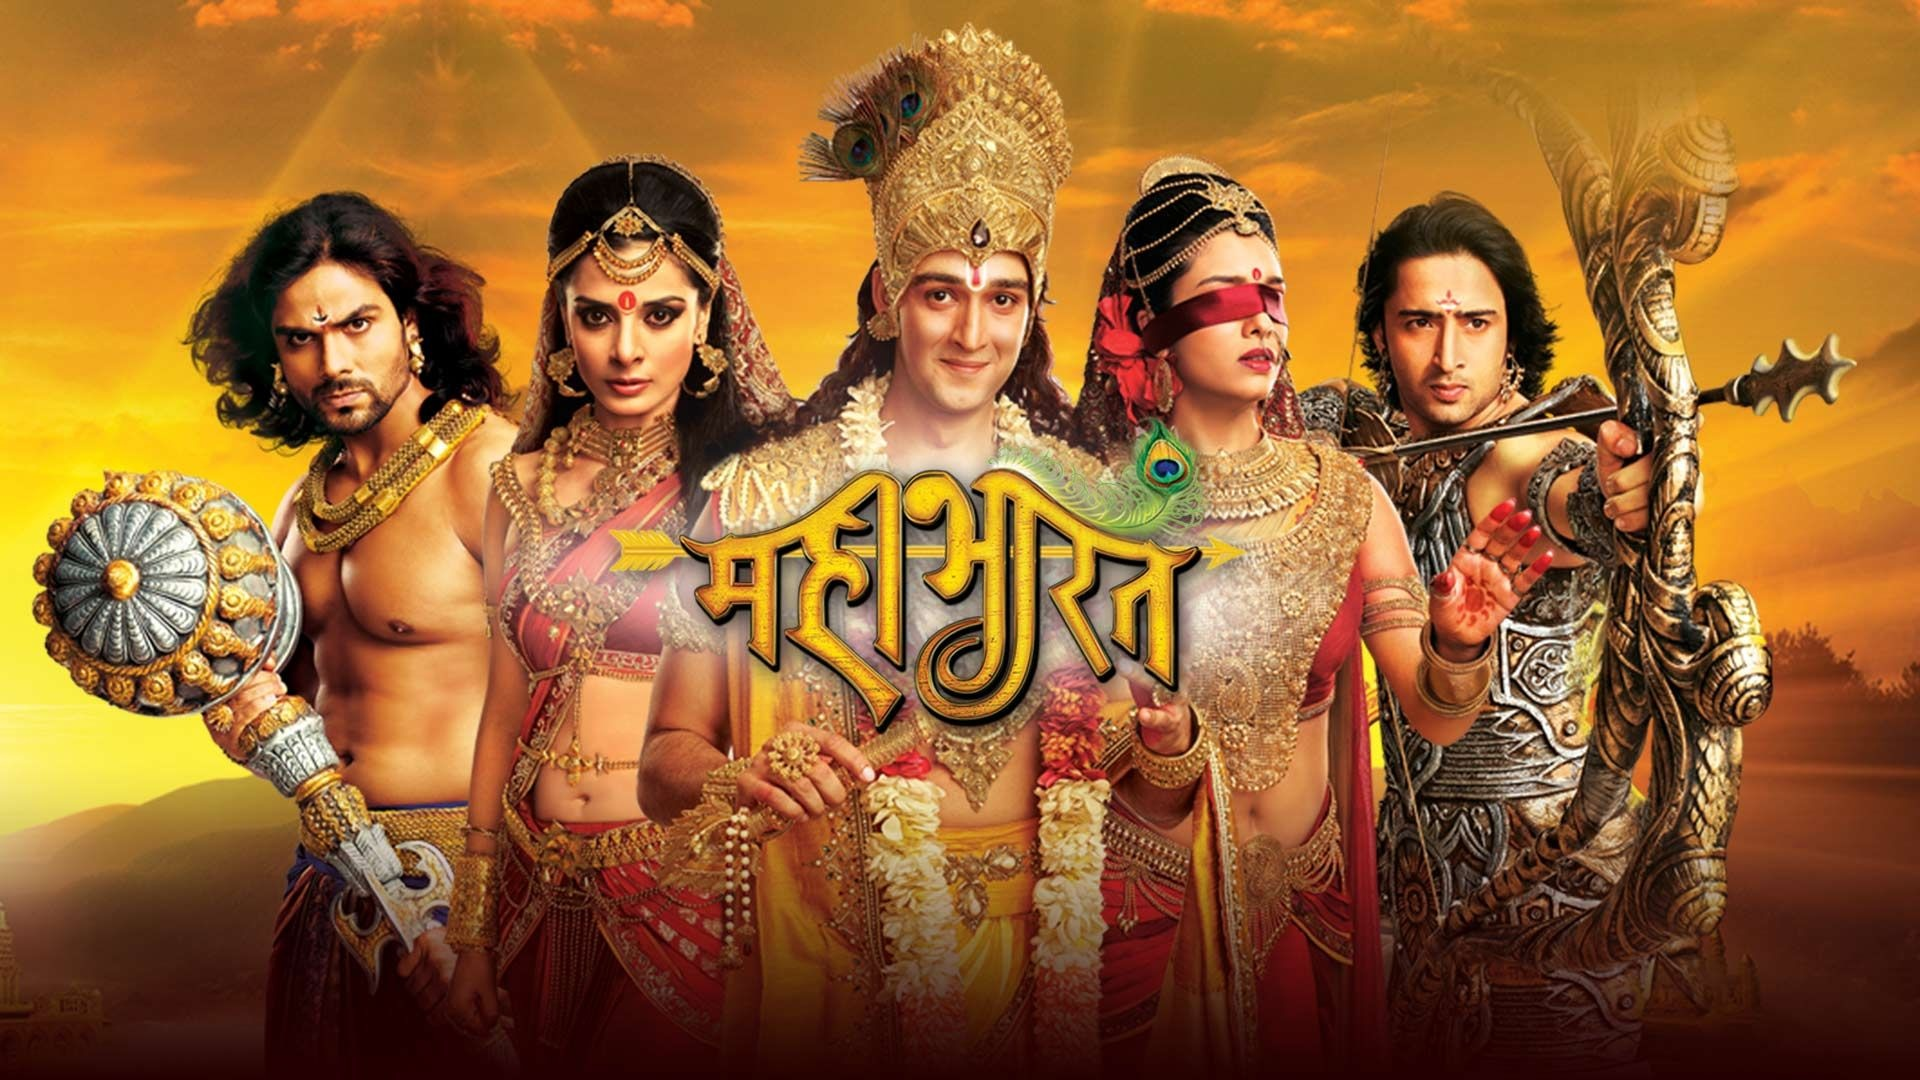 Why Don T Some People Appreciate The Star Plus Mahabharat Series Quora